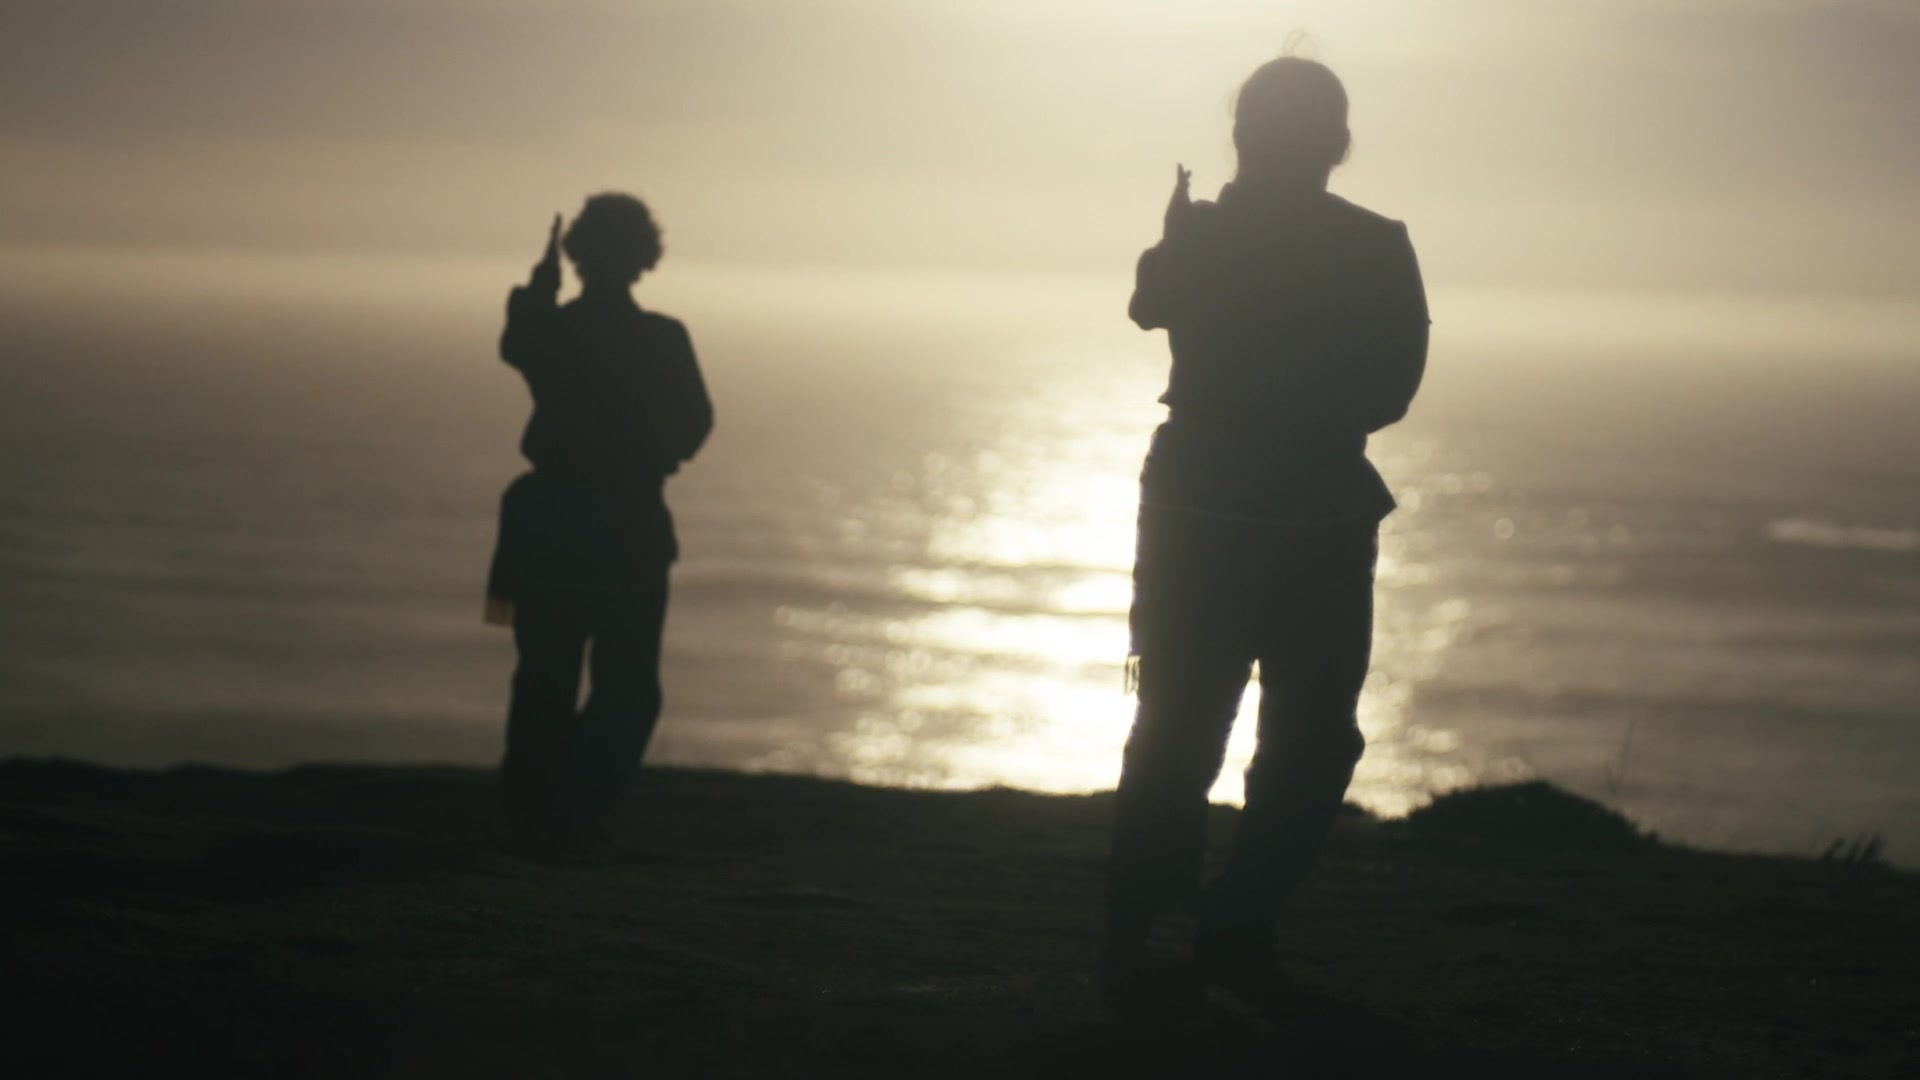 Sifu and Erica perfom Tai Chi for the new video. 10,000 Victories School is in San Rafaef, Marin, CA.